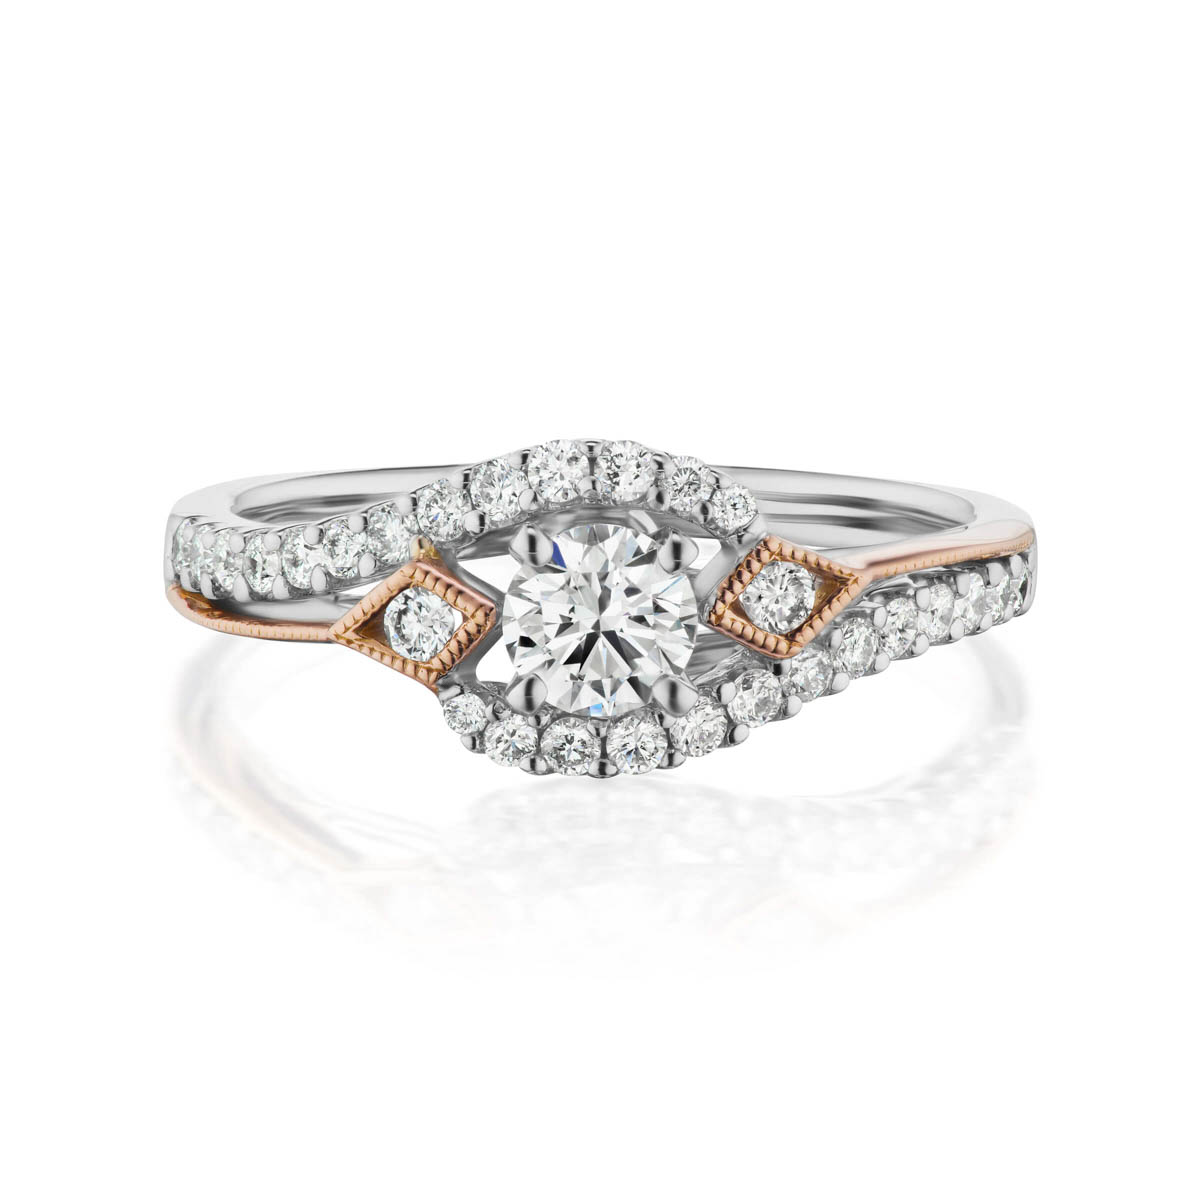 Endear preset engagement diamond ring, 14KT White Gold and Rose Gold